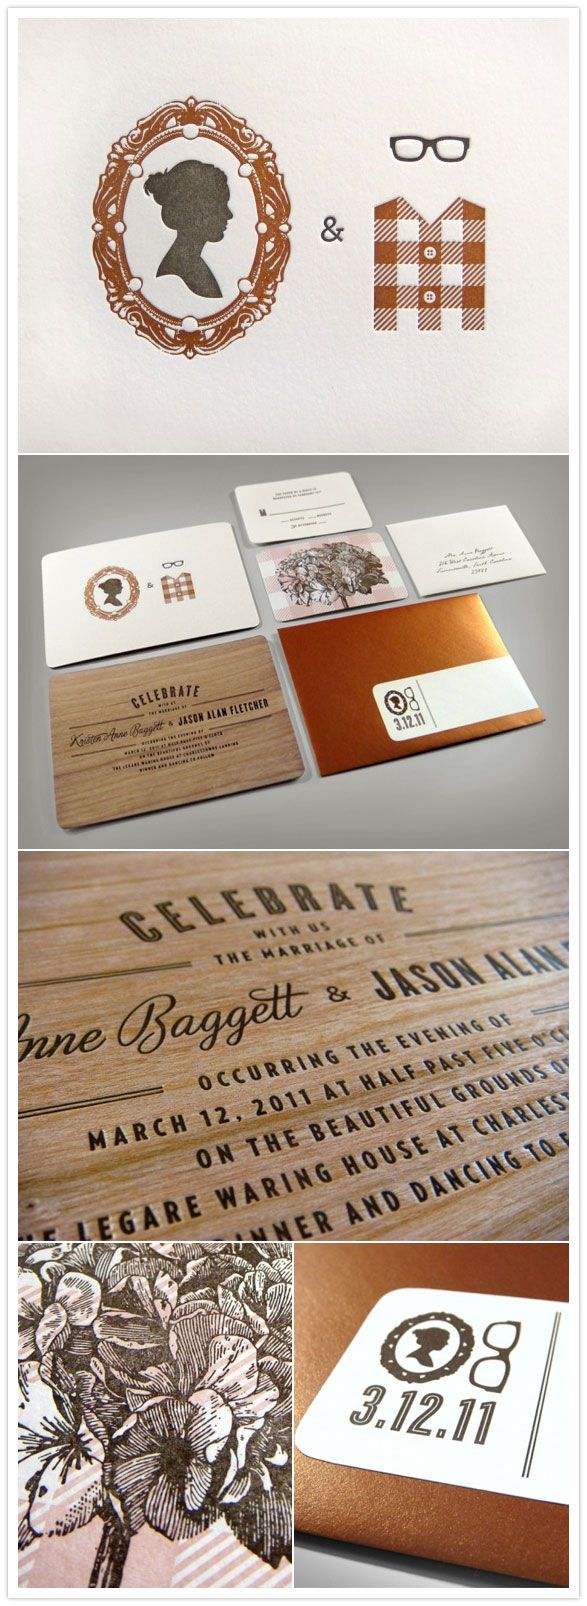 Invite was letterpressed on wood veneer, then duplexed with a cotton stock on the back. Cute!